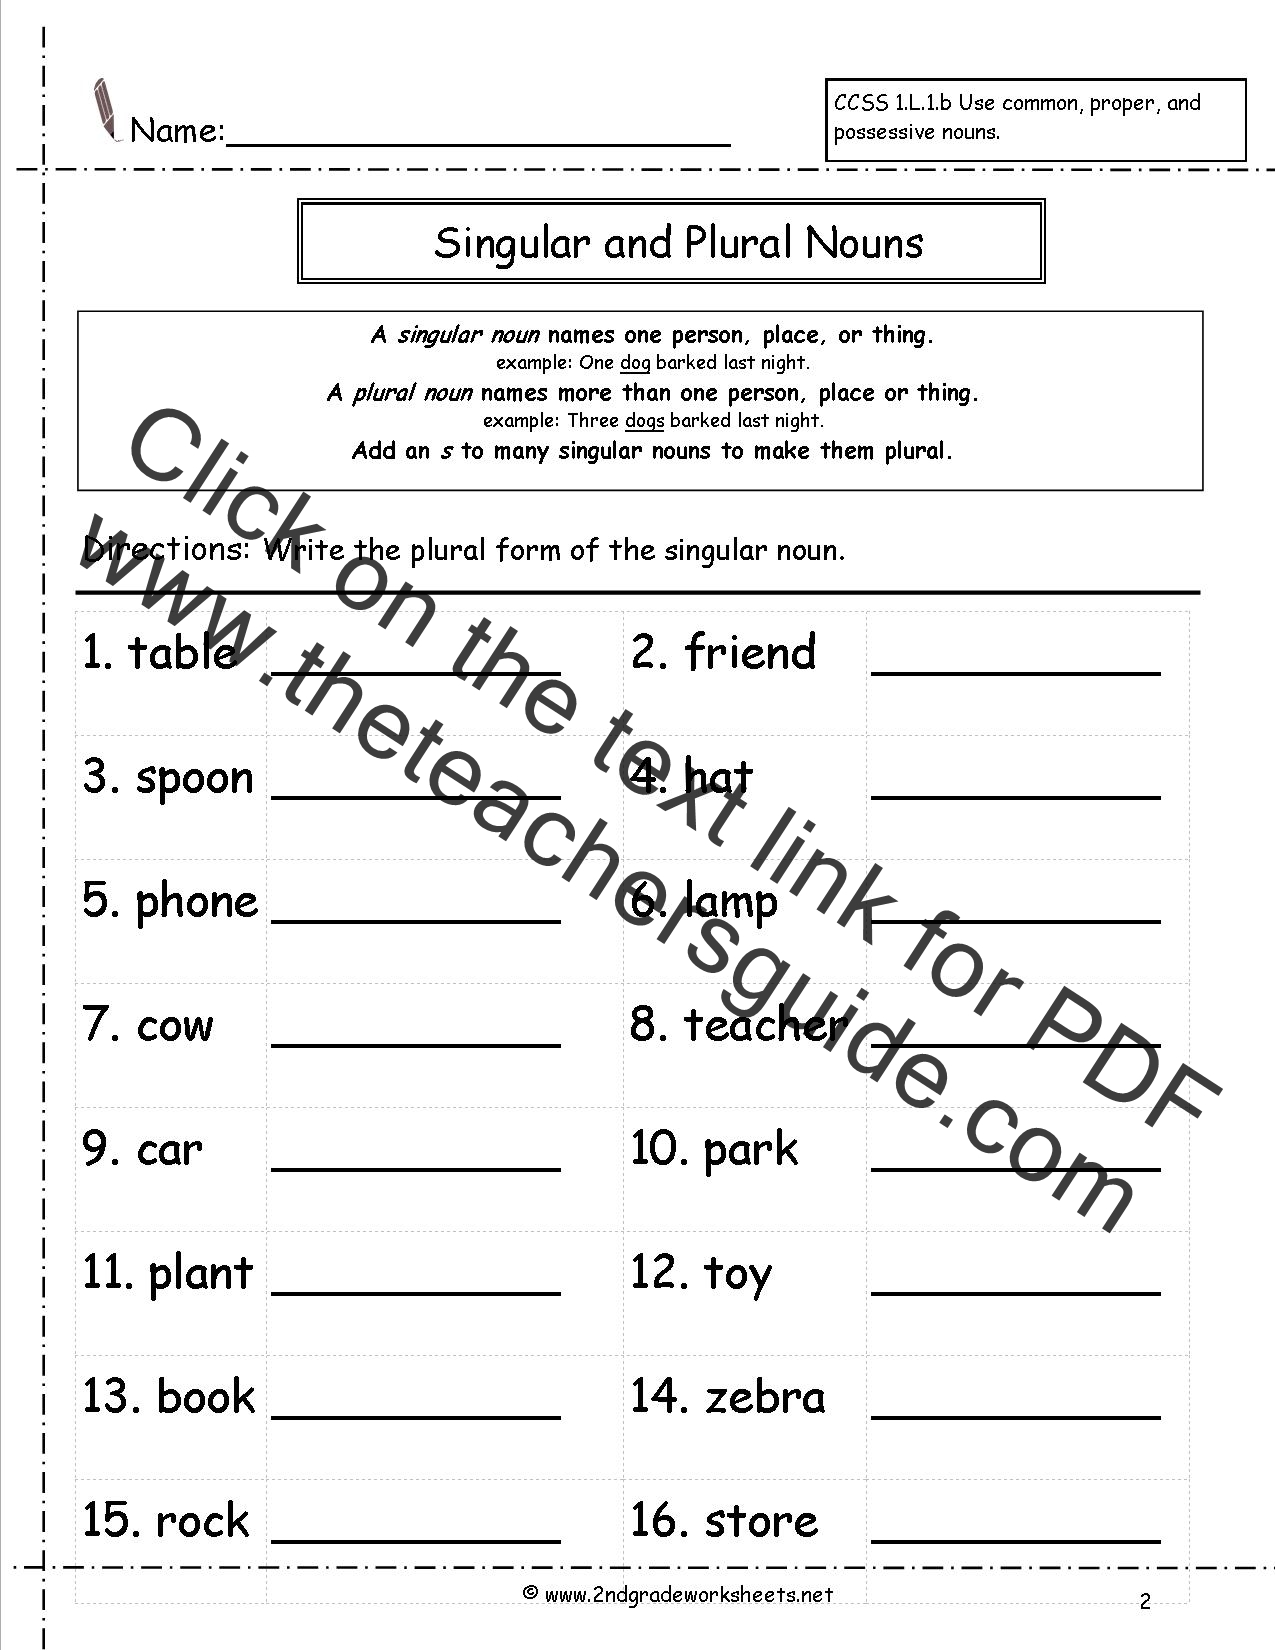 Free Worksheet Irregular Plurals Worksheet singular and plural nouns worksheets worksheet